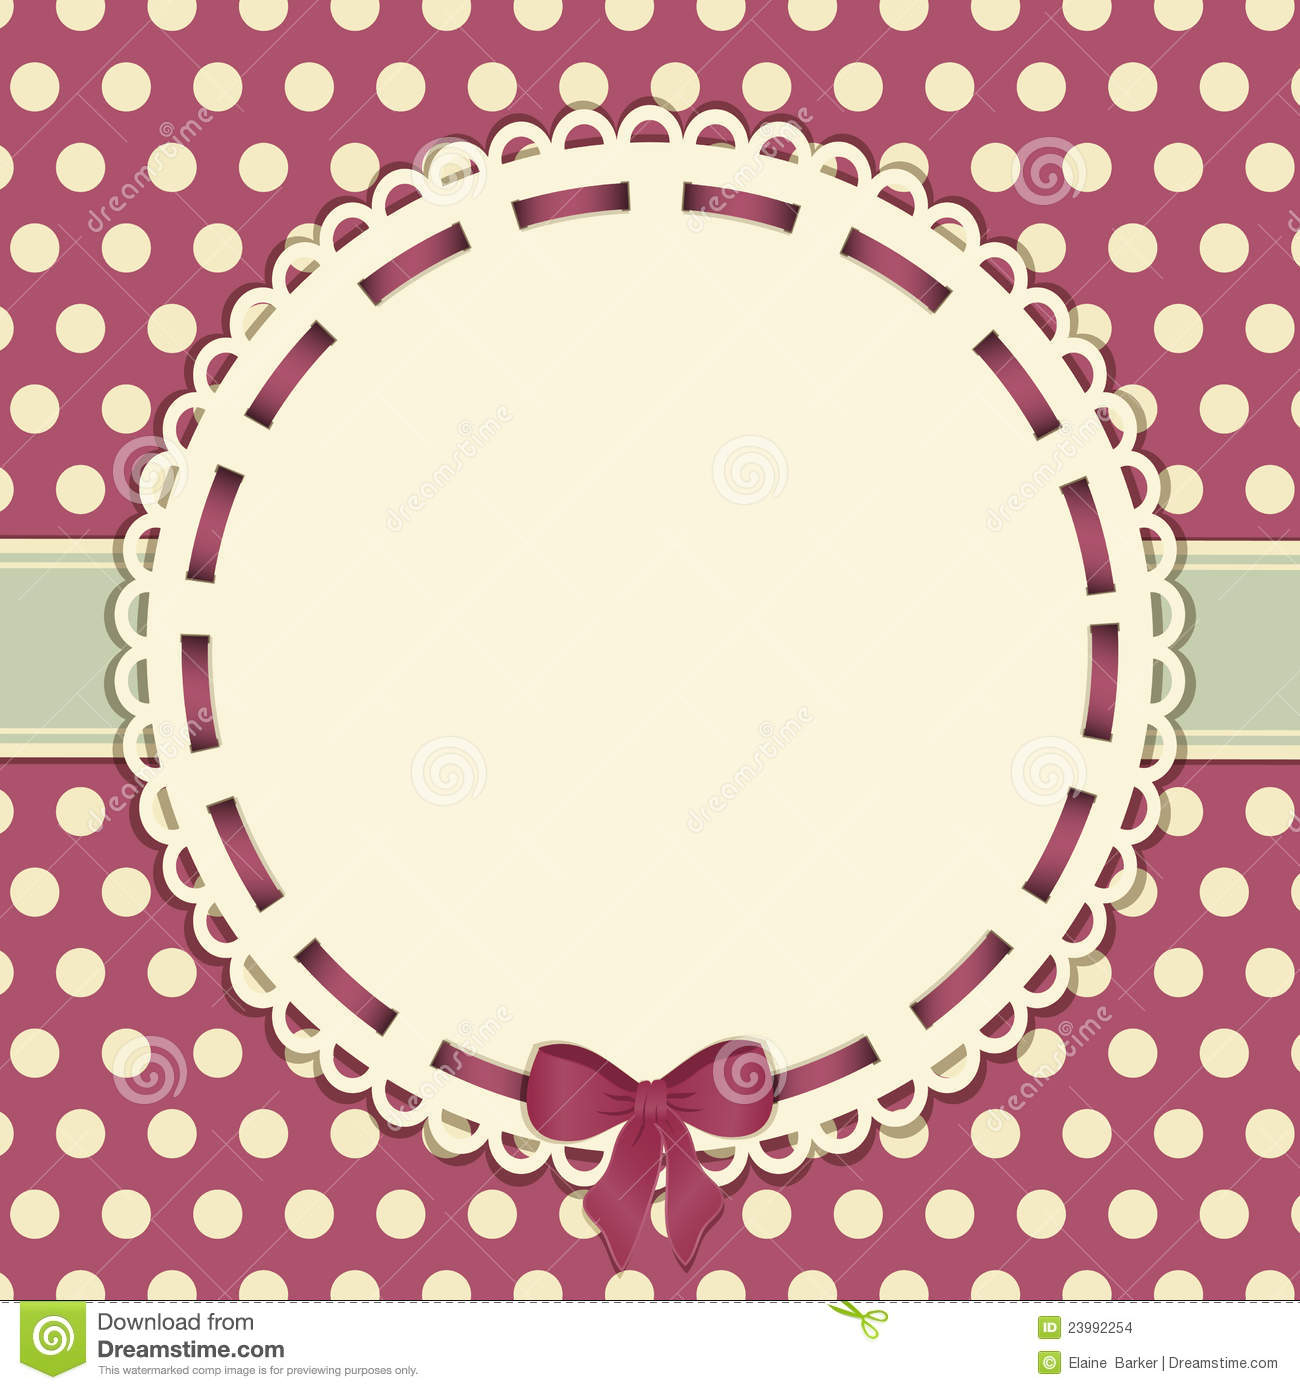 vintage polka dot background with ribbon stock vector